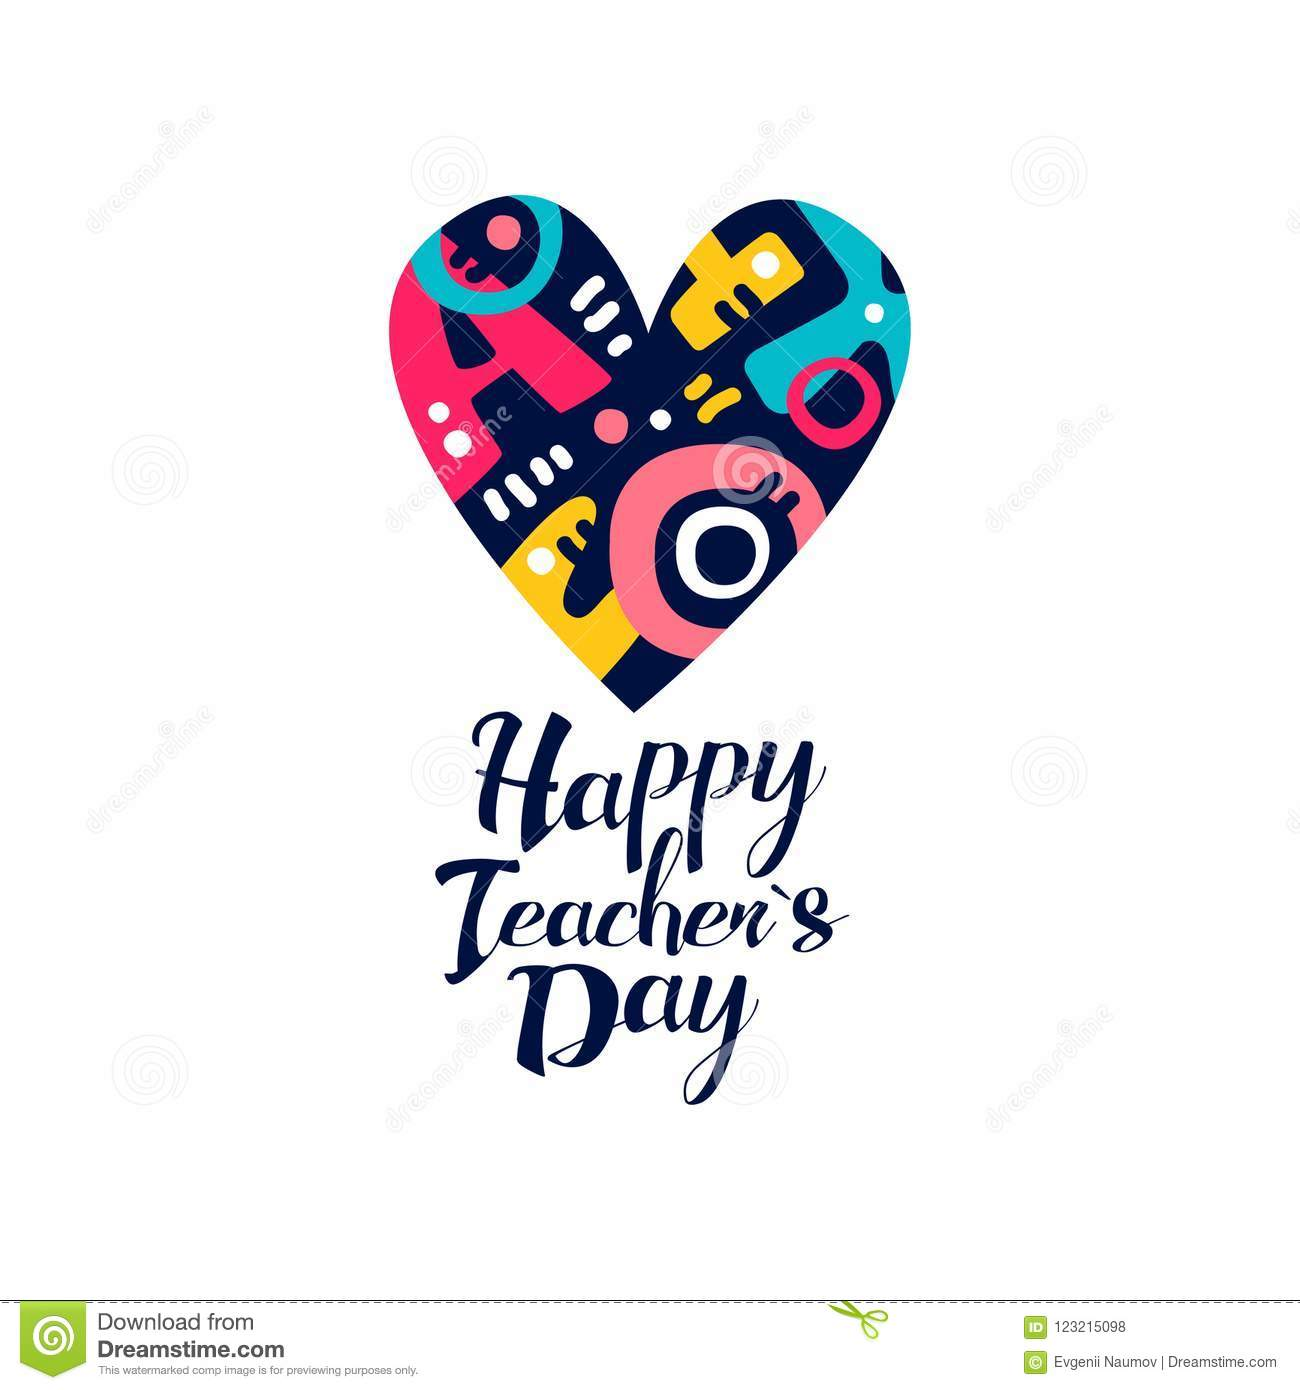 Happy Teachers Day logo, creative template for greeting card, invitation, poster, banner, t-shirt design vector